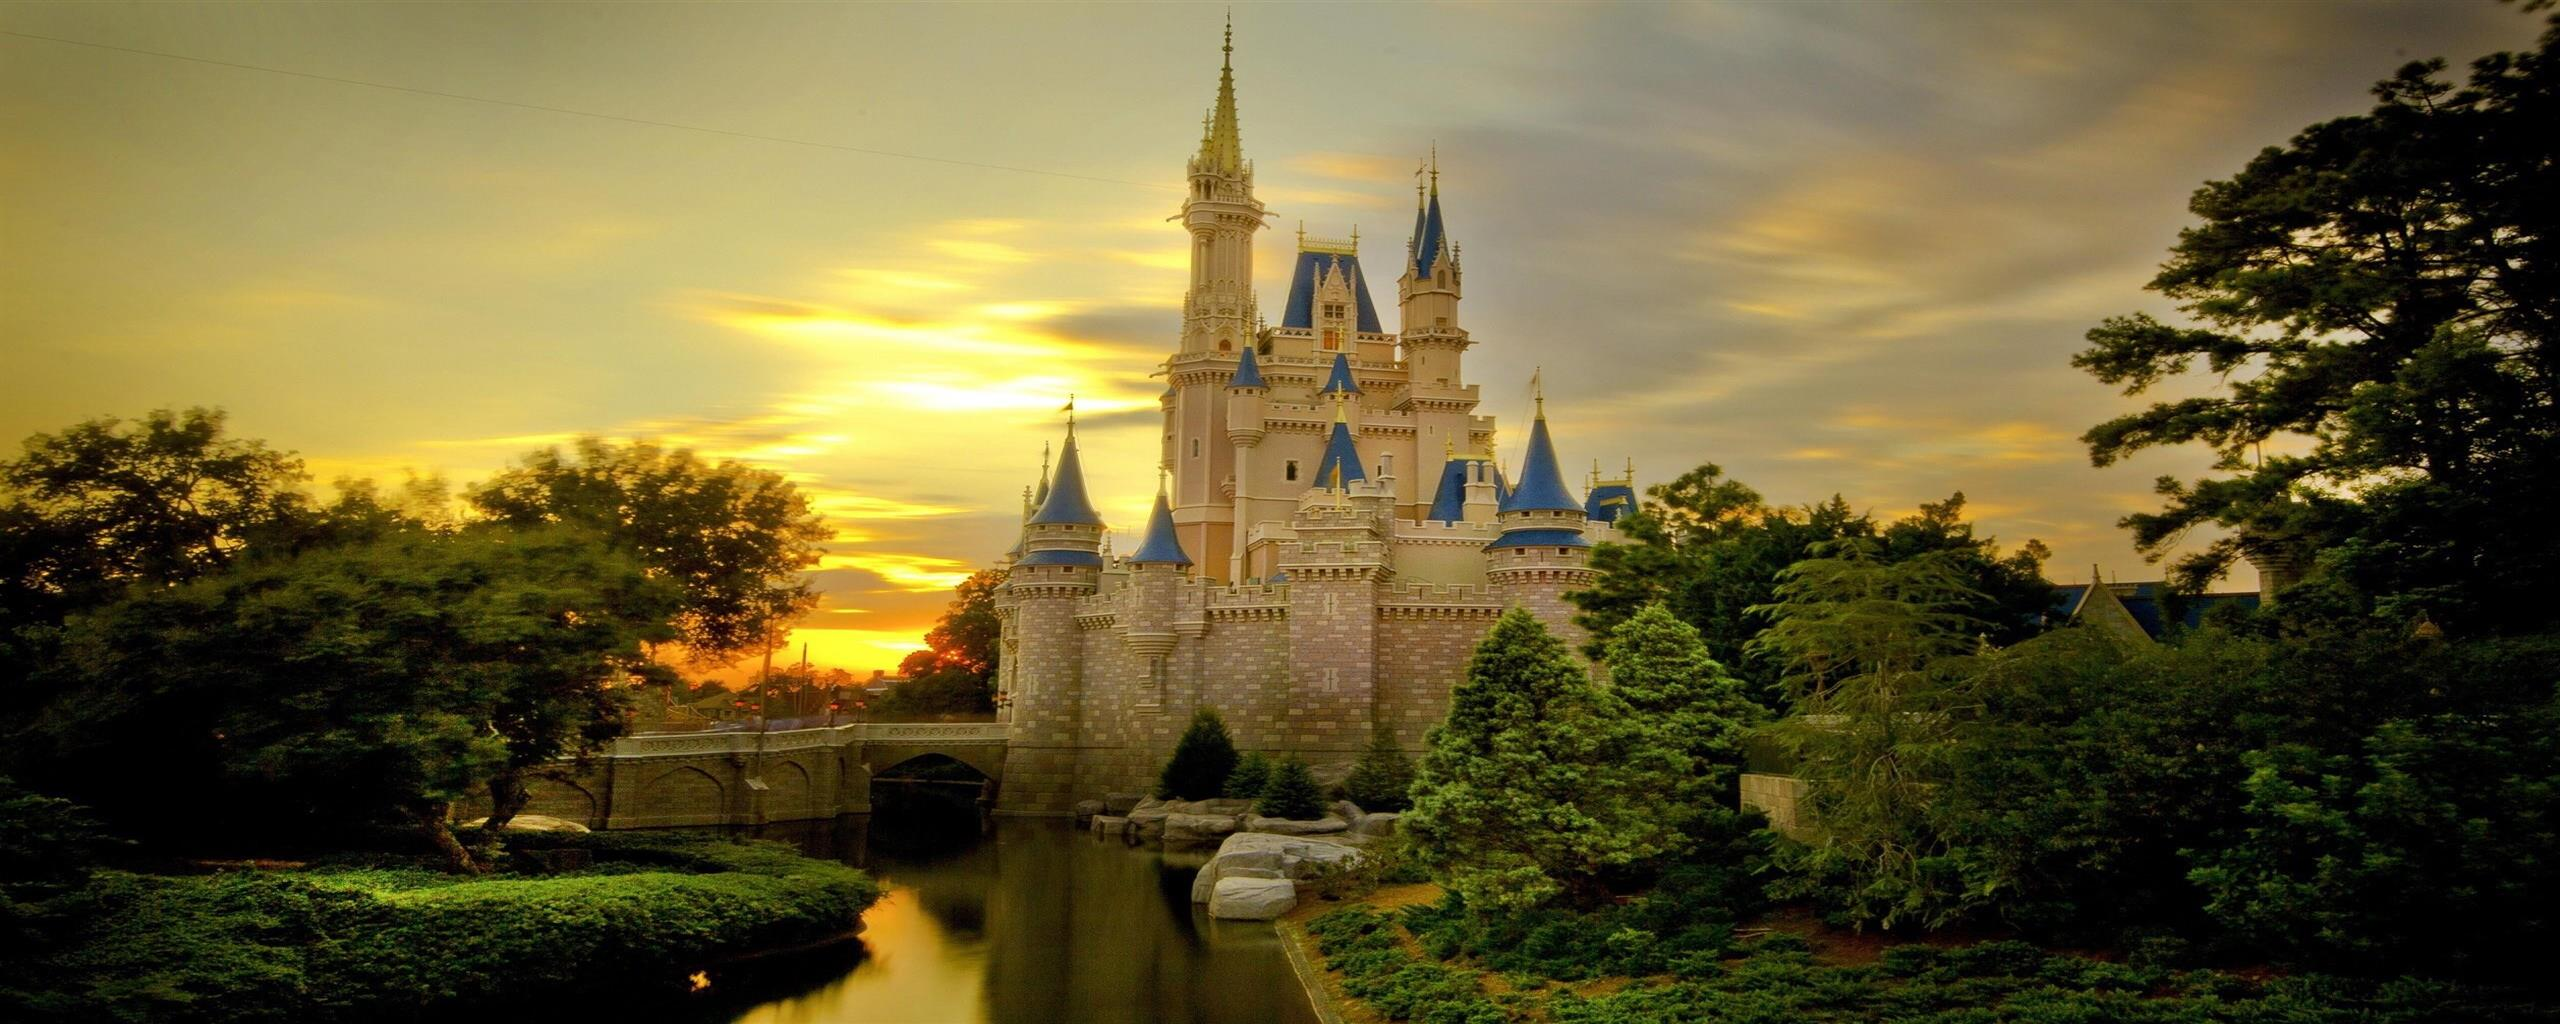 2560x1024 Amazing Beautiful Cinderella Castle Image Free Download